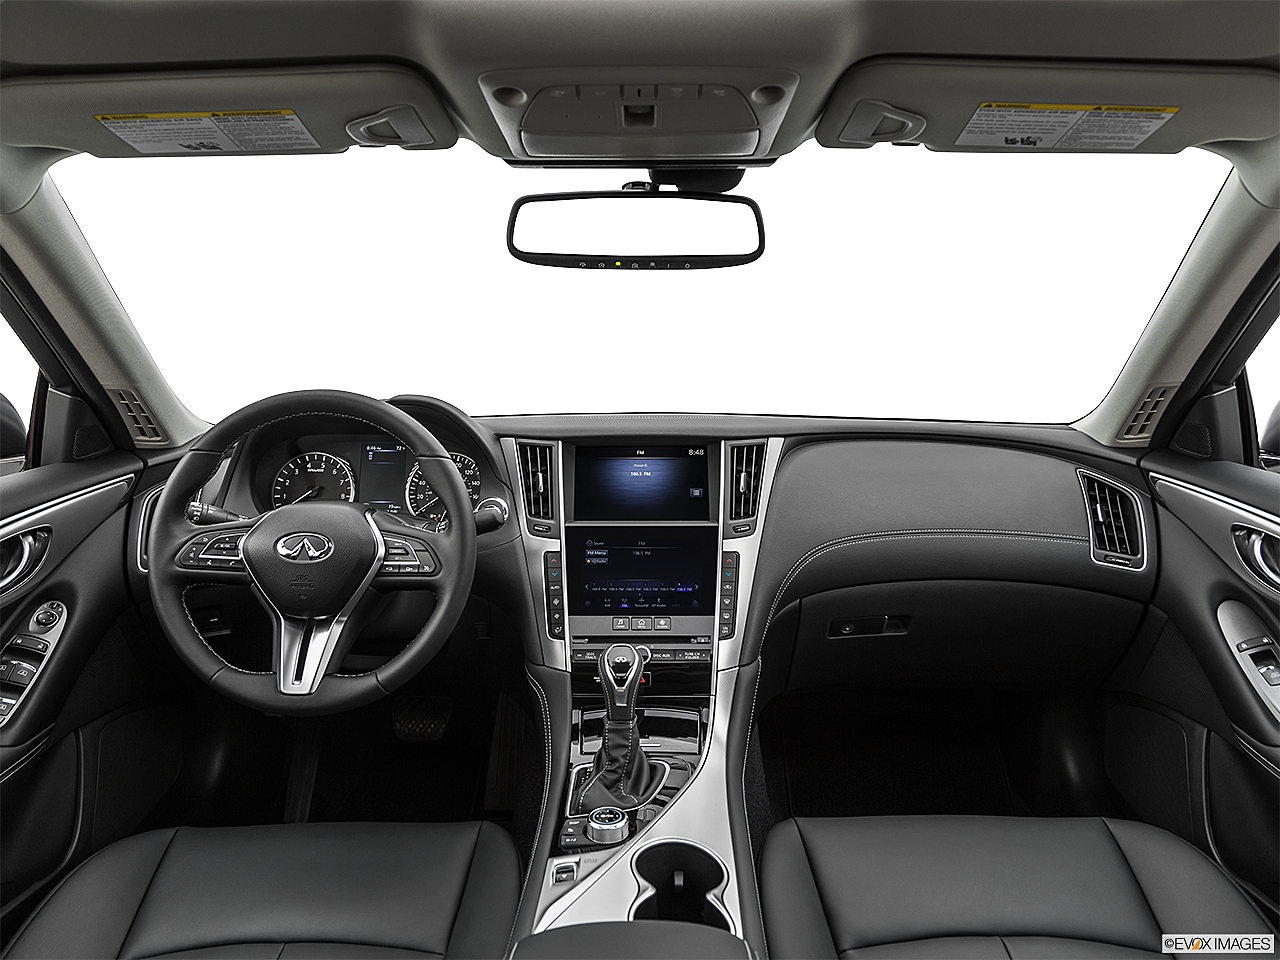 2020 Infiniti Q50 3.0t LUXE, centered wide dash shot